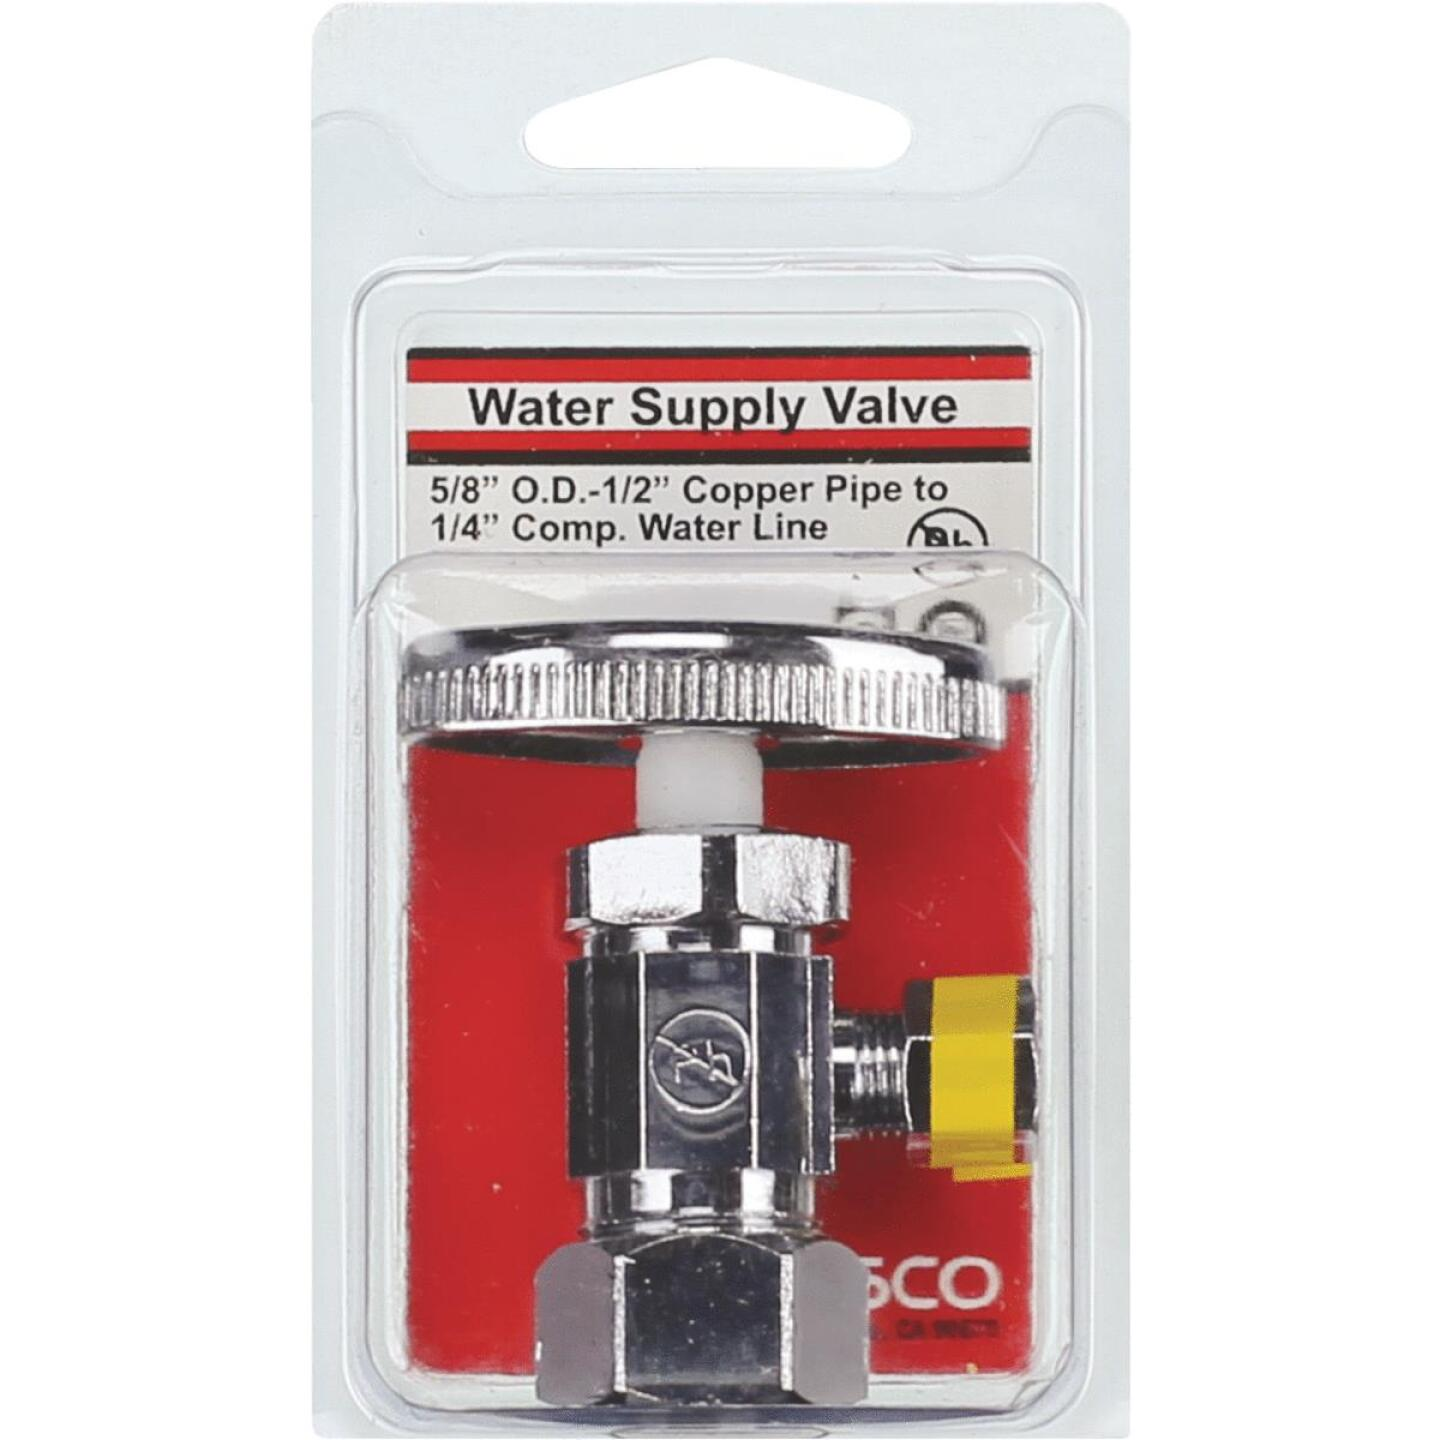 Lasco 5/8 In. Comp Inlet x 1/4 In. Comp Outlet Multi-Turn Style Angle Valve Image 2